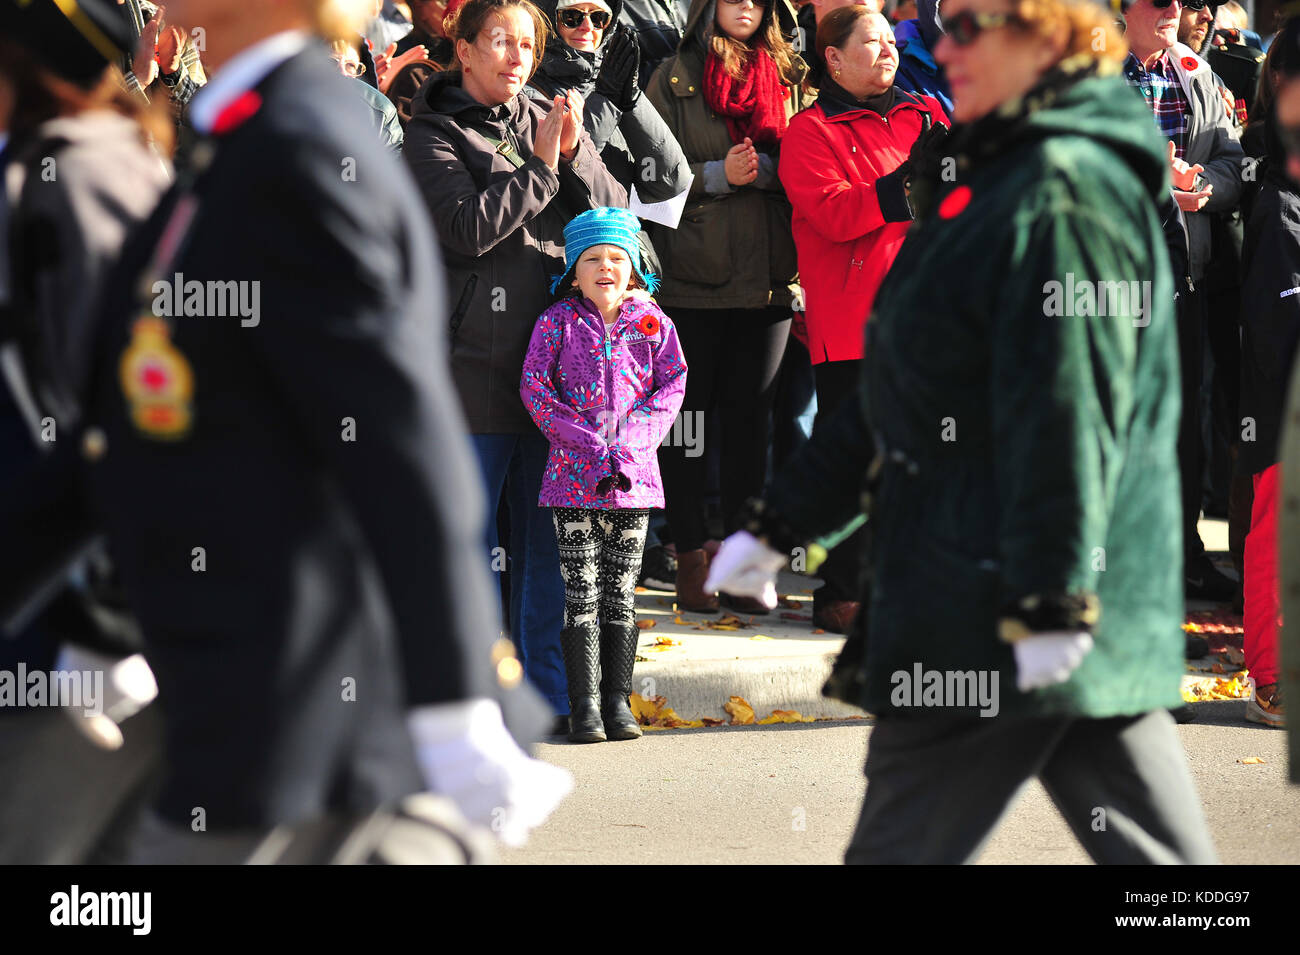 A young girl at a remembrance day event in London, Ontario in Canada. - Stock Image